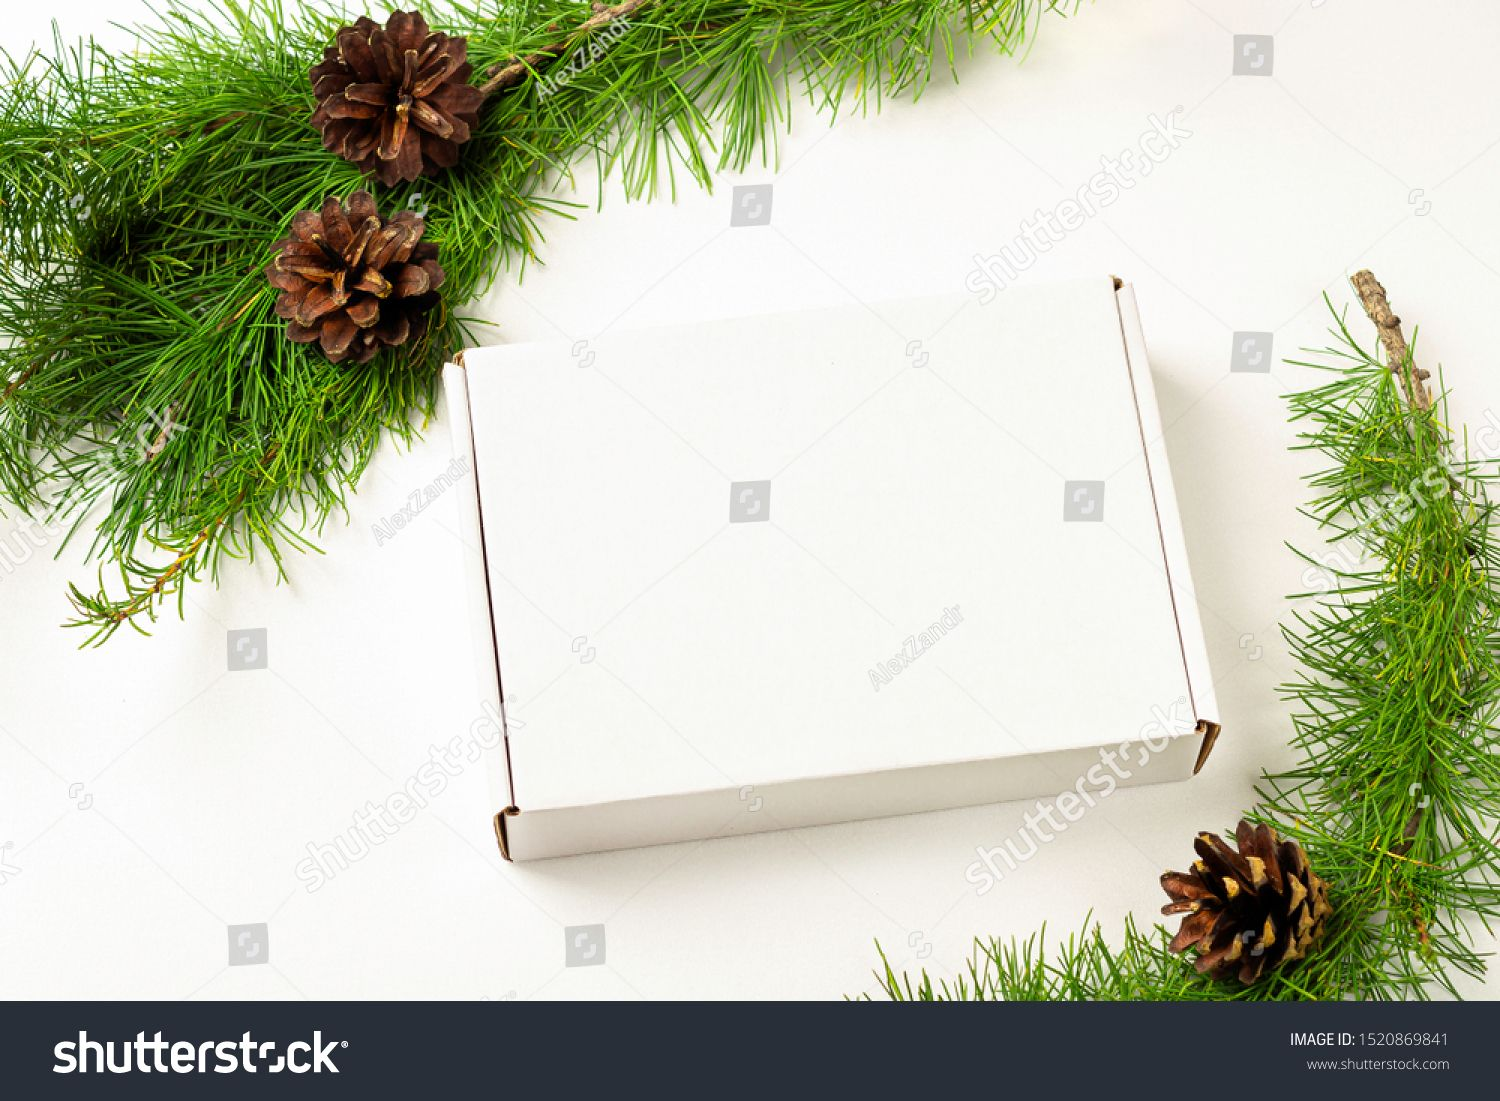 Mockup White Gift Box On A White Background Decorated Christmas Tree Branch With Cones Christmas Winter Holidays And New Yea Christmas Tree Decorations Christmas Tree Branches White Gift Boxes